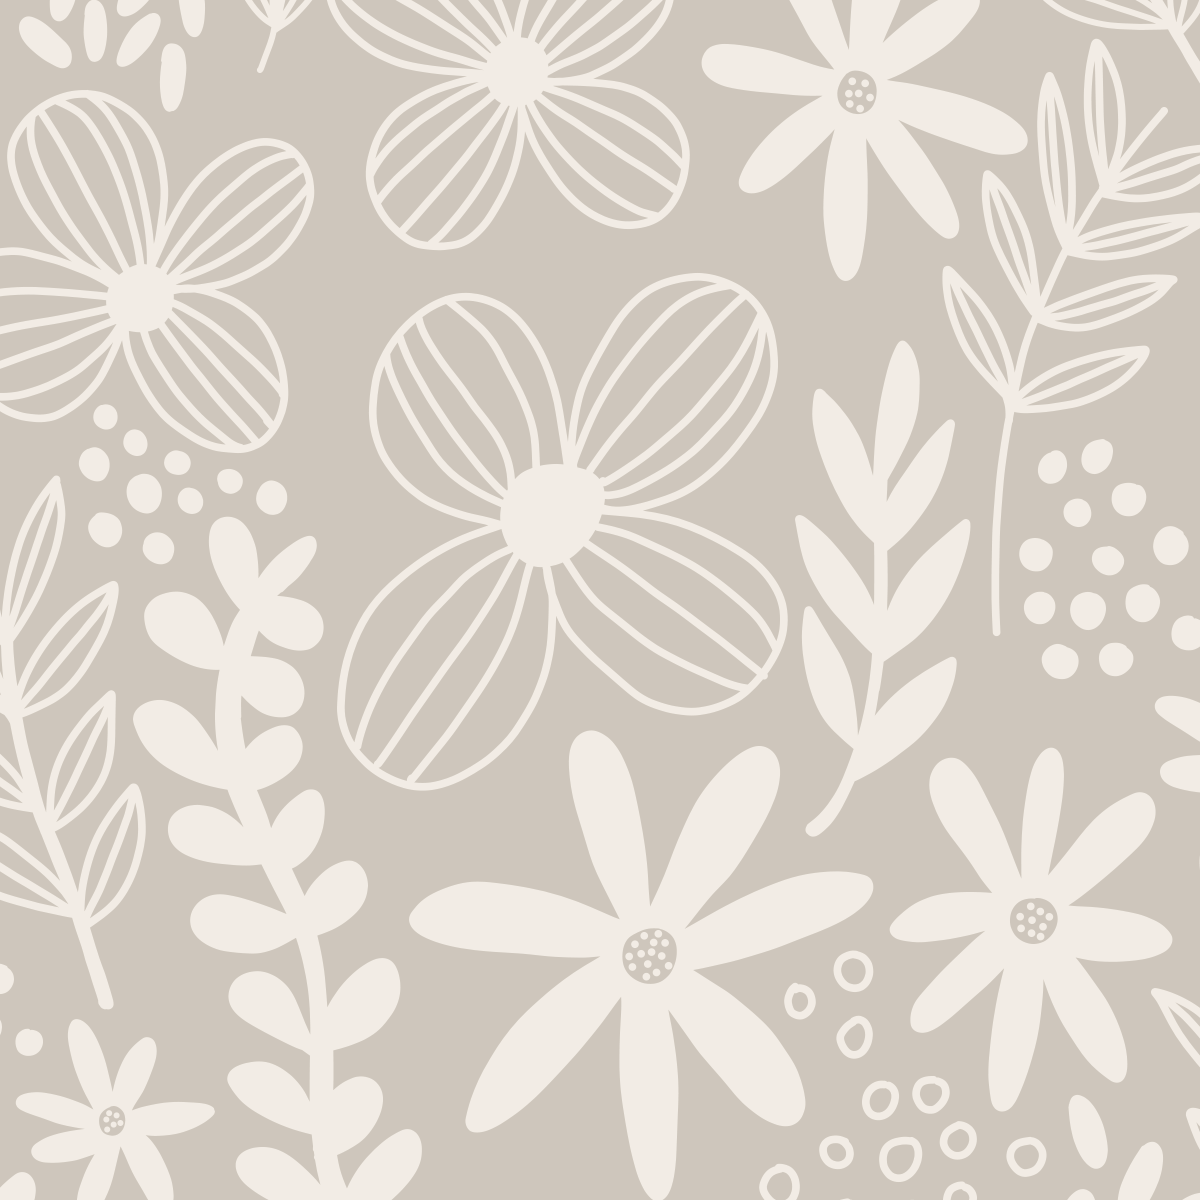 Graphic floral pattern design by Pace Creative Design Studio